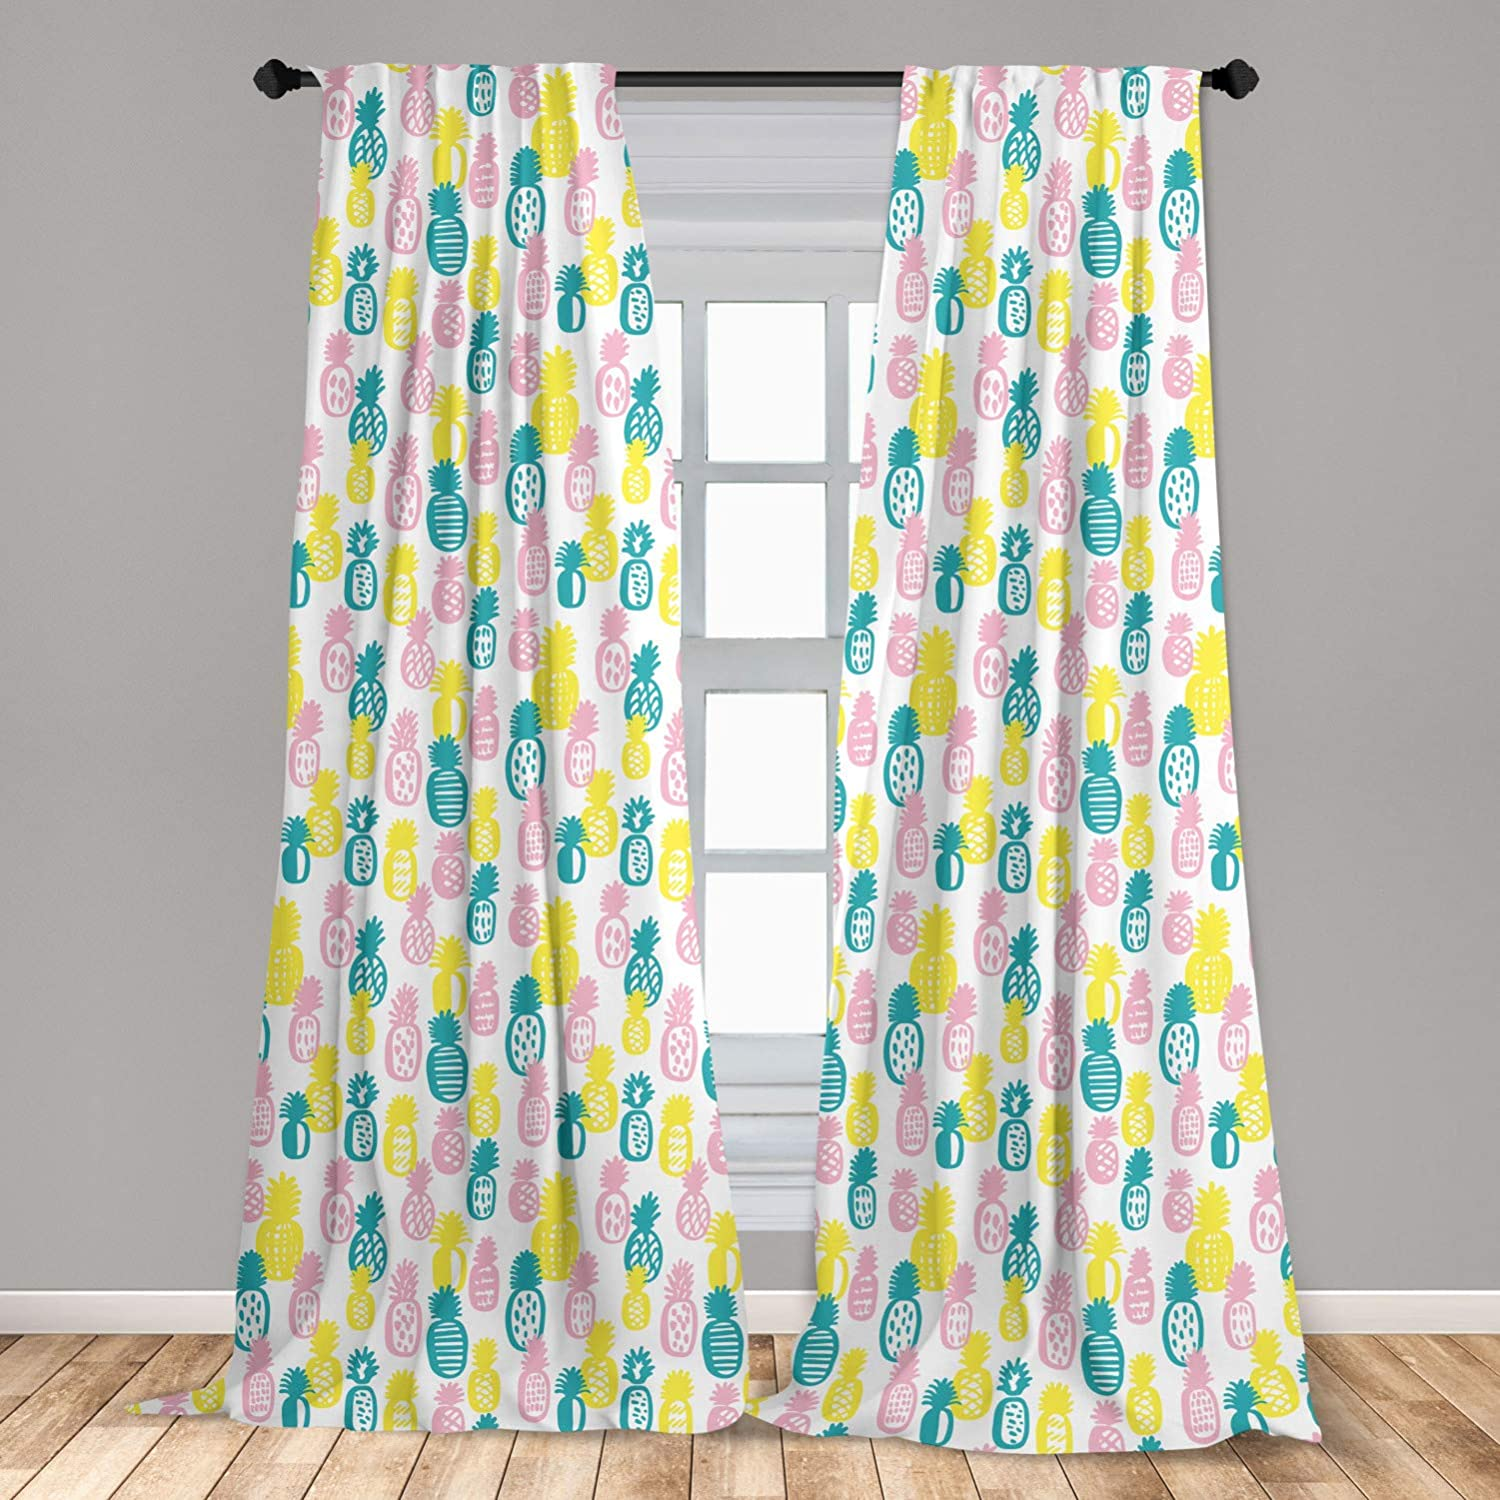 Ambesonne Pineapple Curtains, Colorful Doodle Food Design with Abstract Patterns Stripes Dots and Rhombuses, Window Treatments 2 Panel Set for Living Room Bedroom Decor, 56